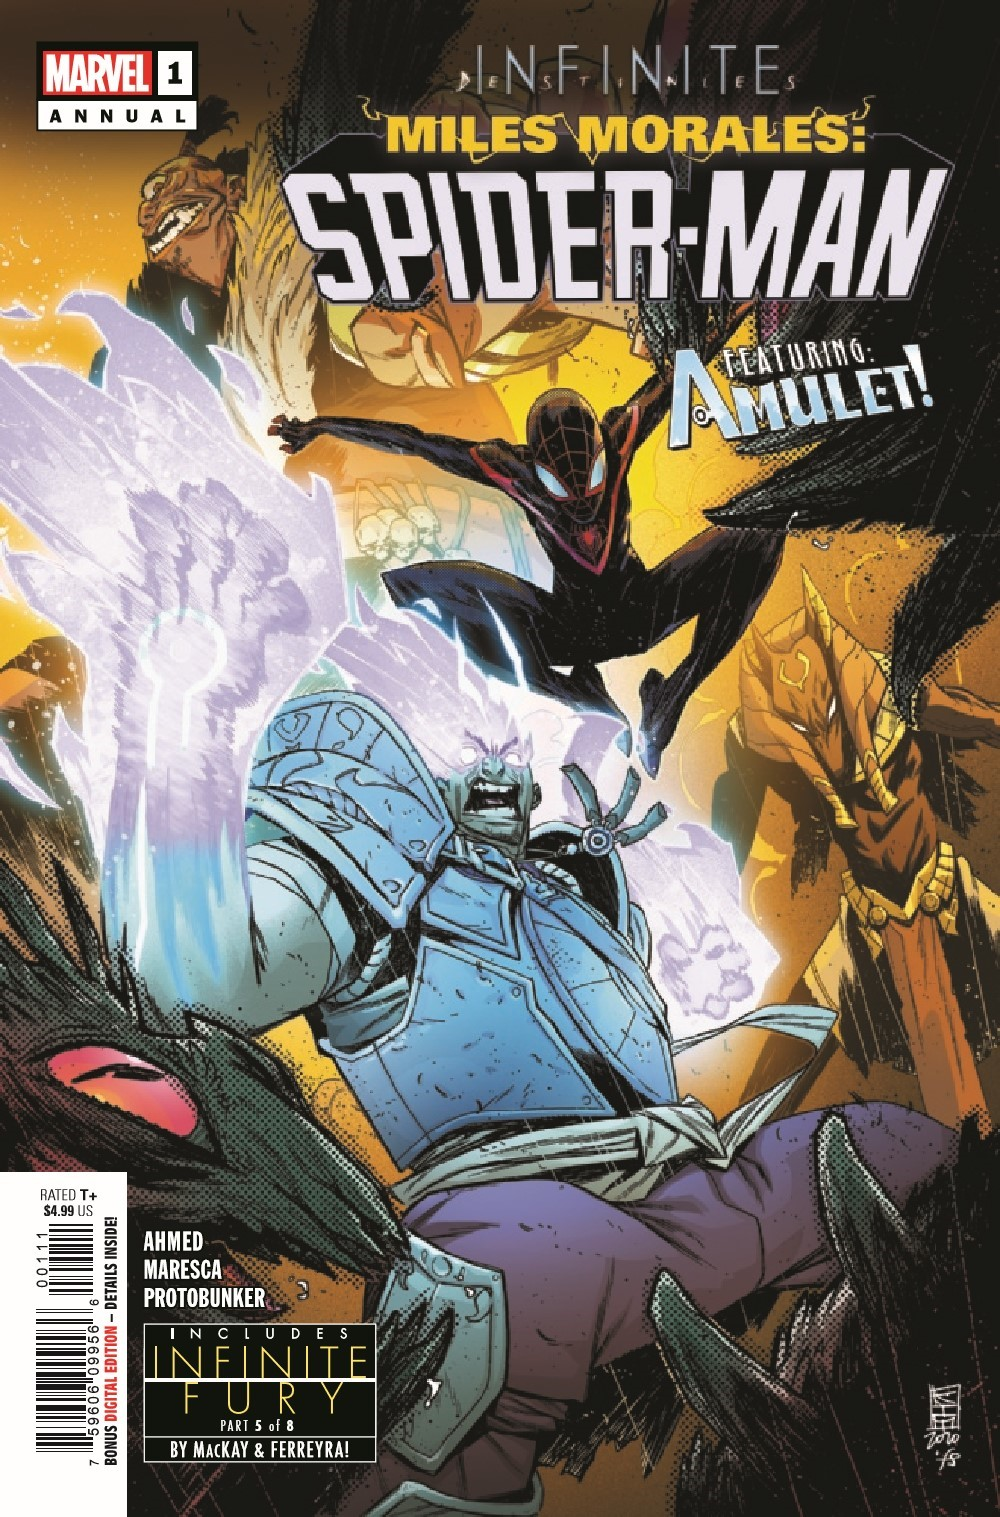 MMSMANN2021001_Preview-1 ComicList Previews: MILES MORALES SPIDER-MAN ANNUAL #1